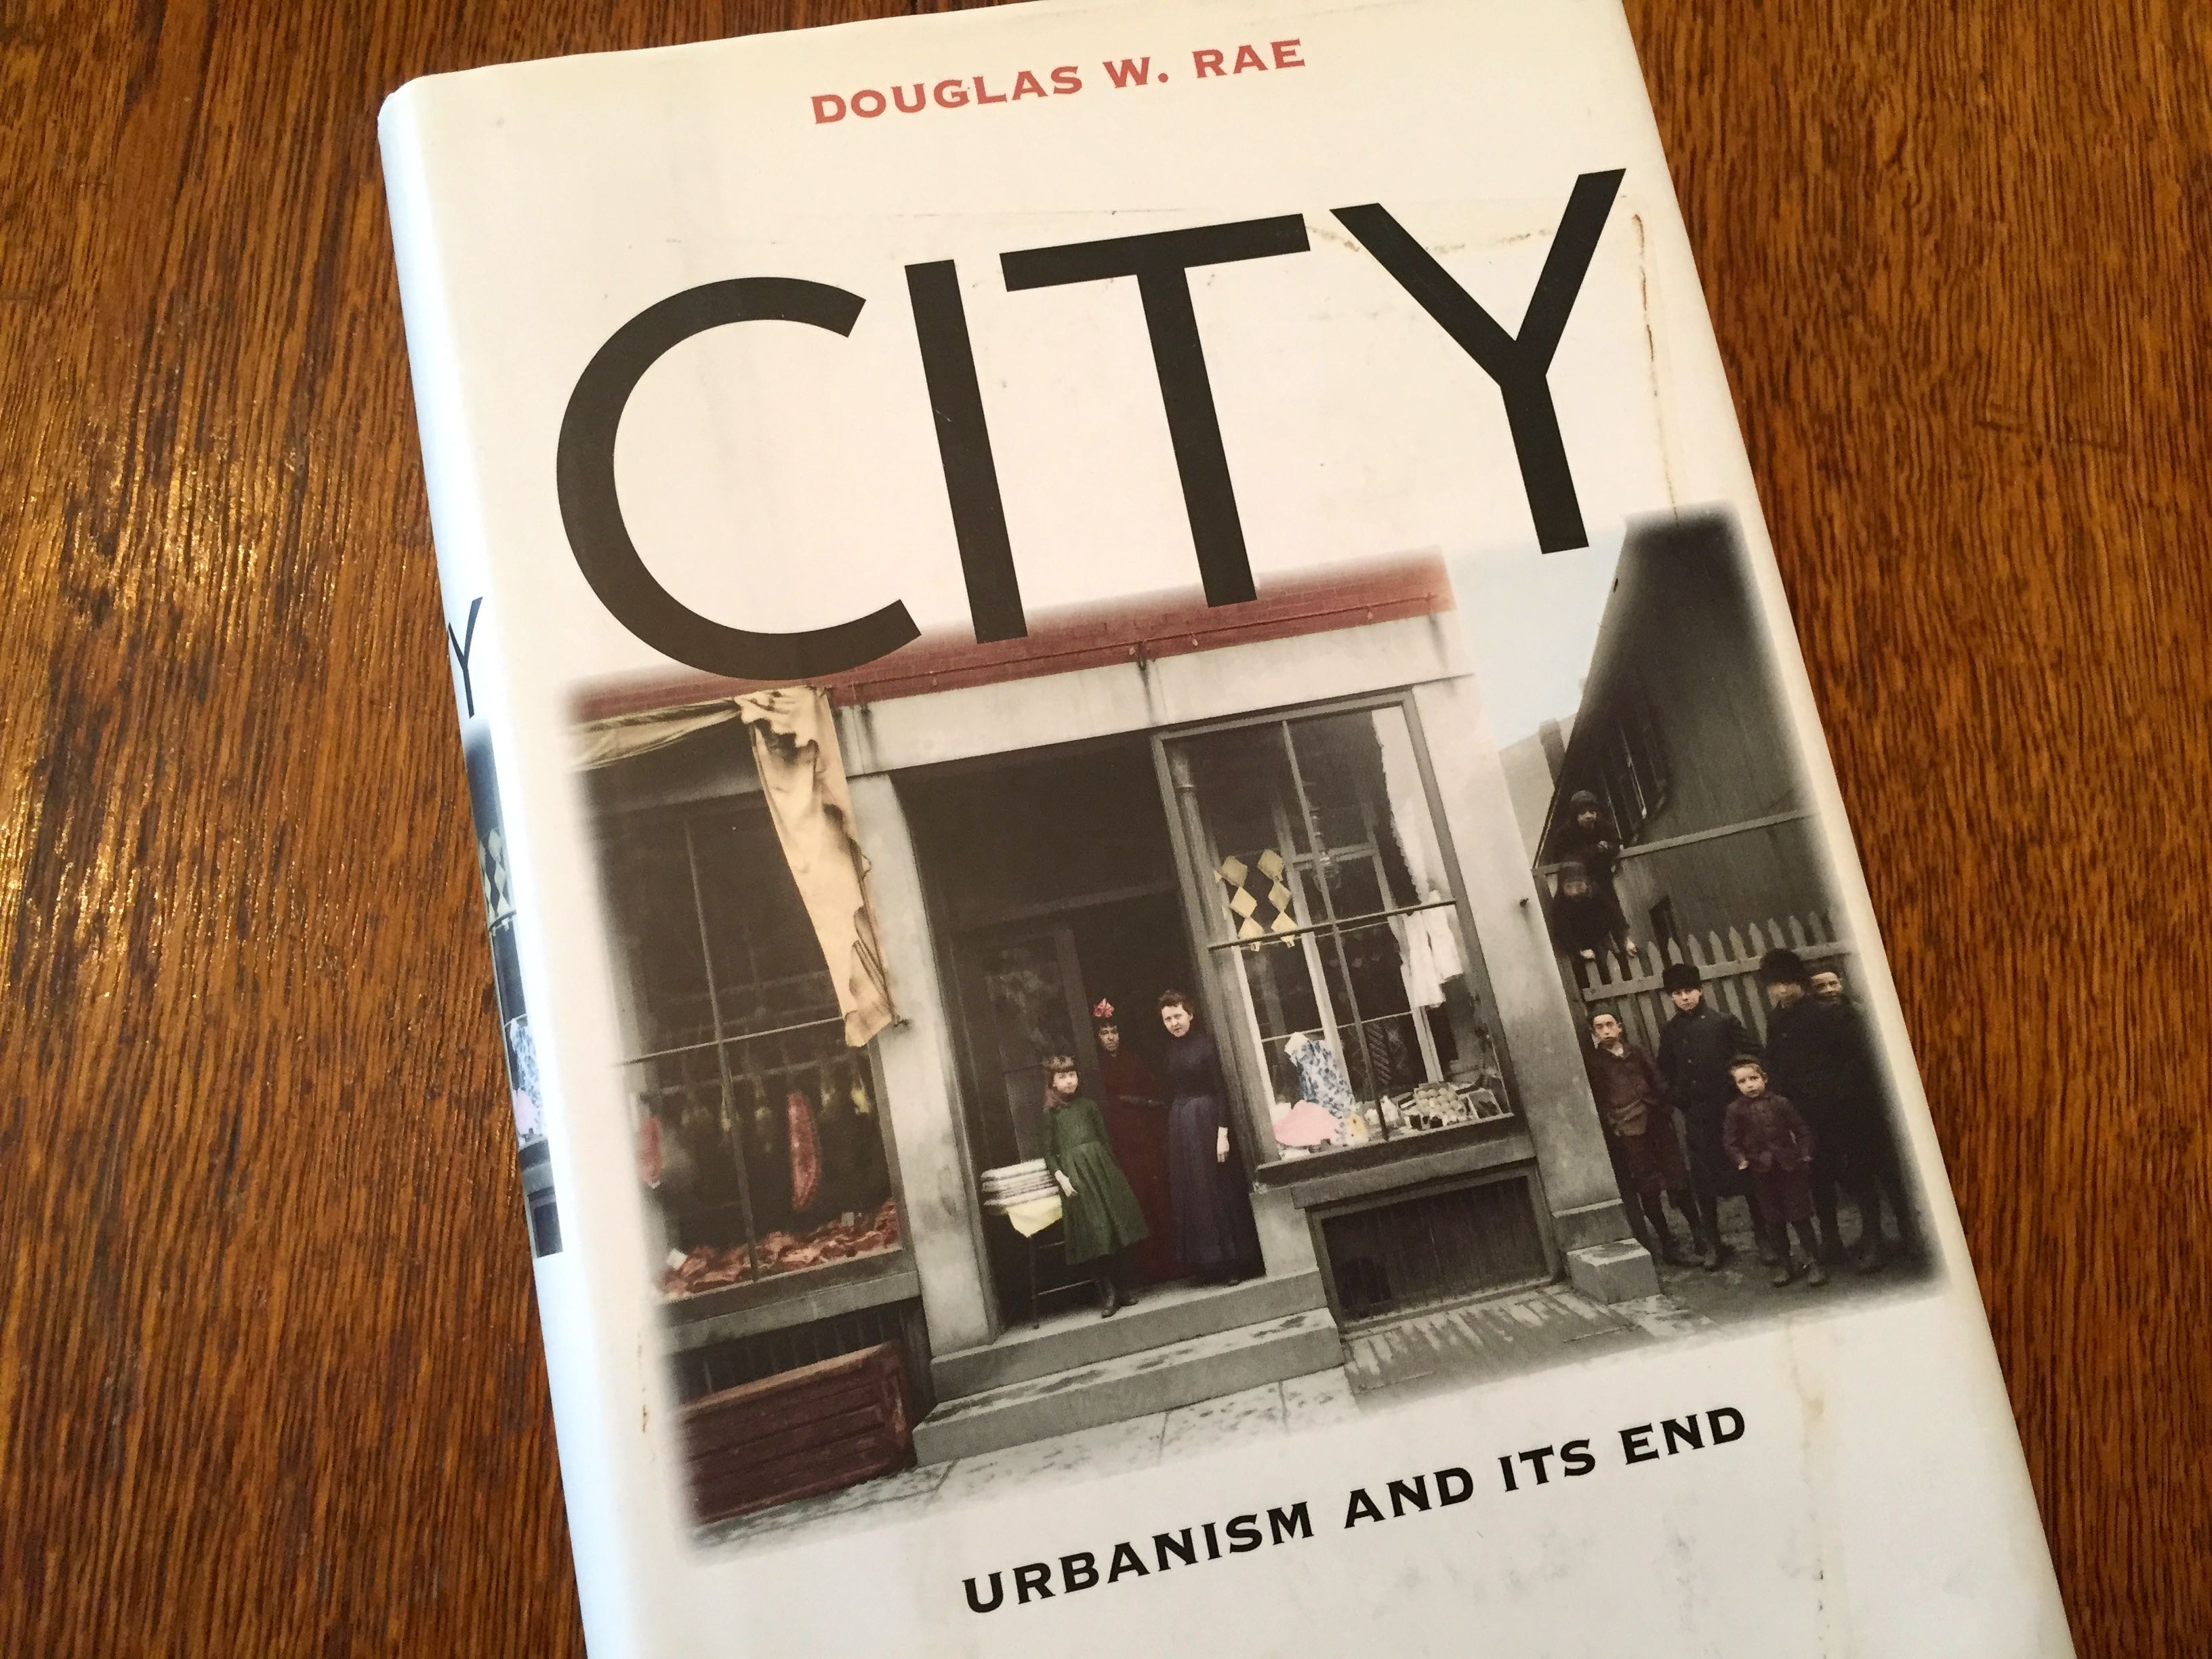 How to Read a Flawed Book About Cities